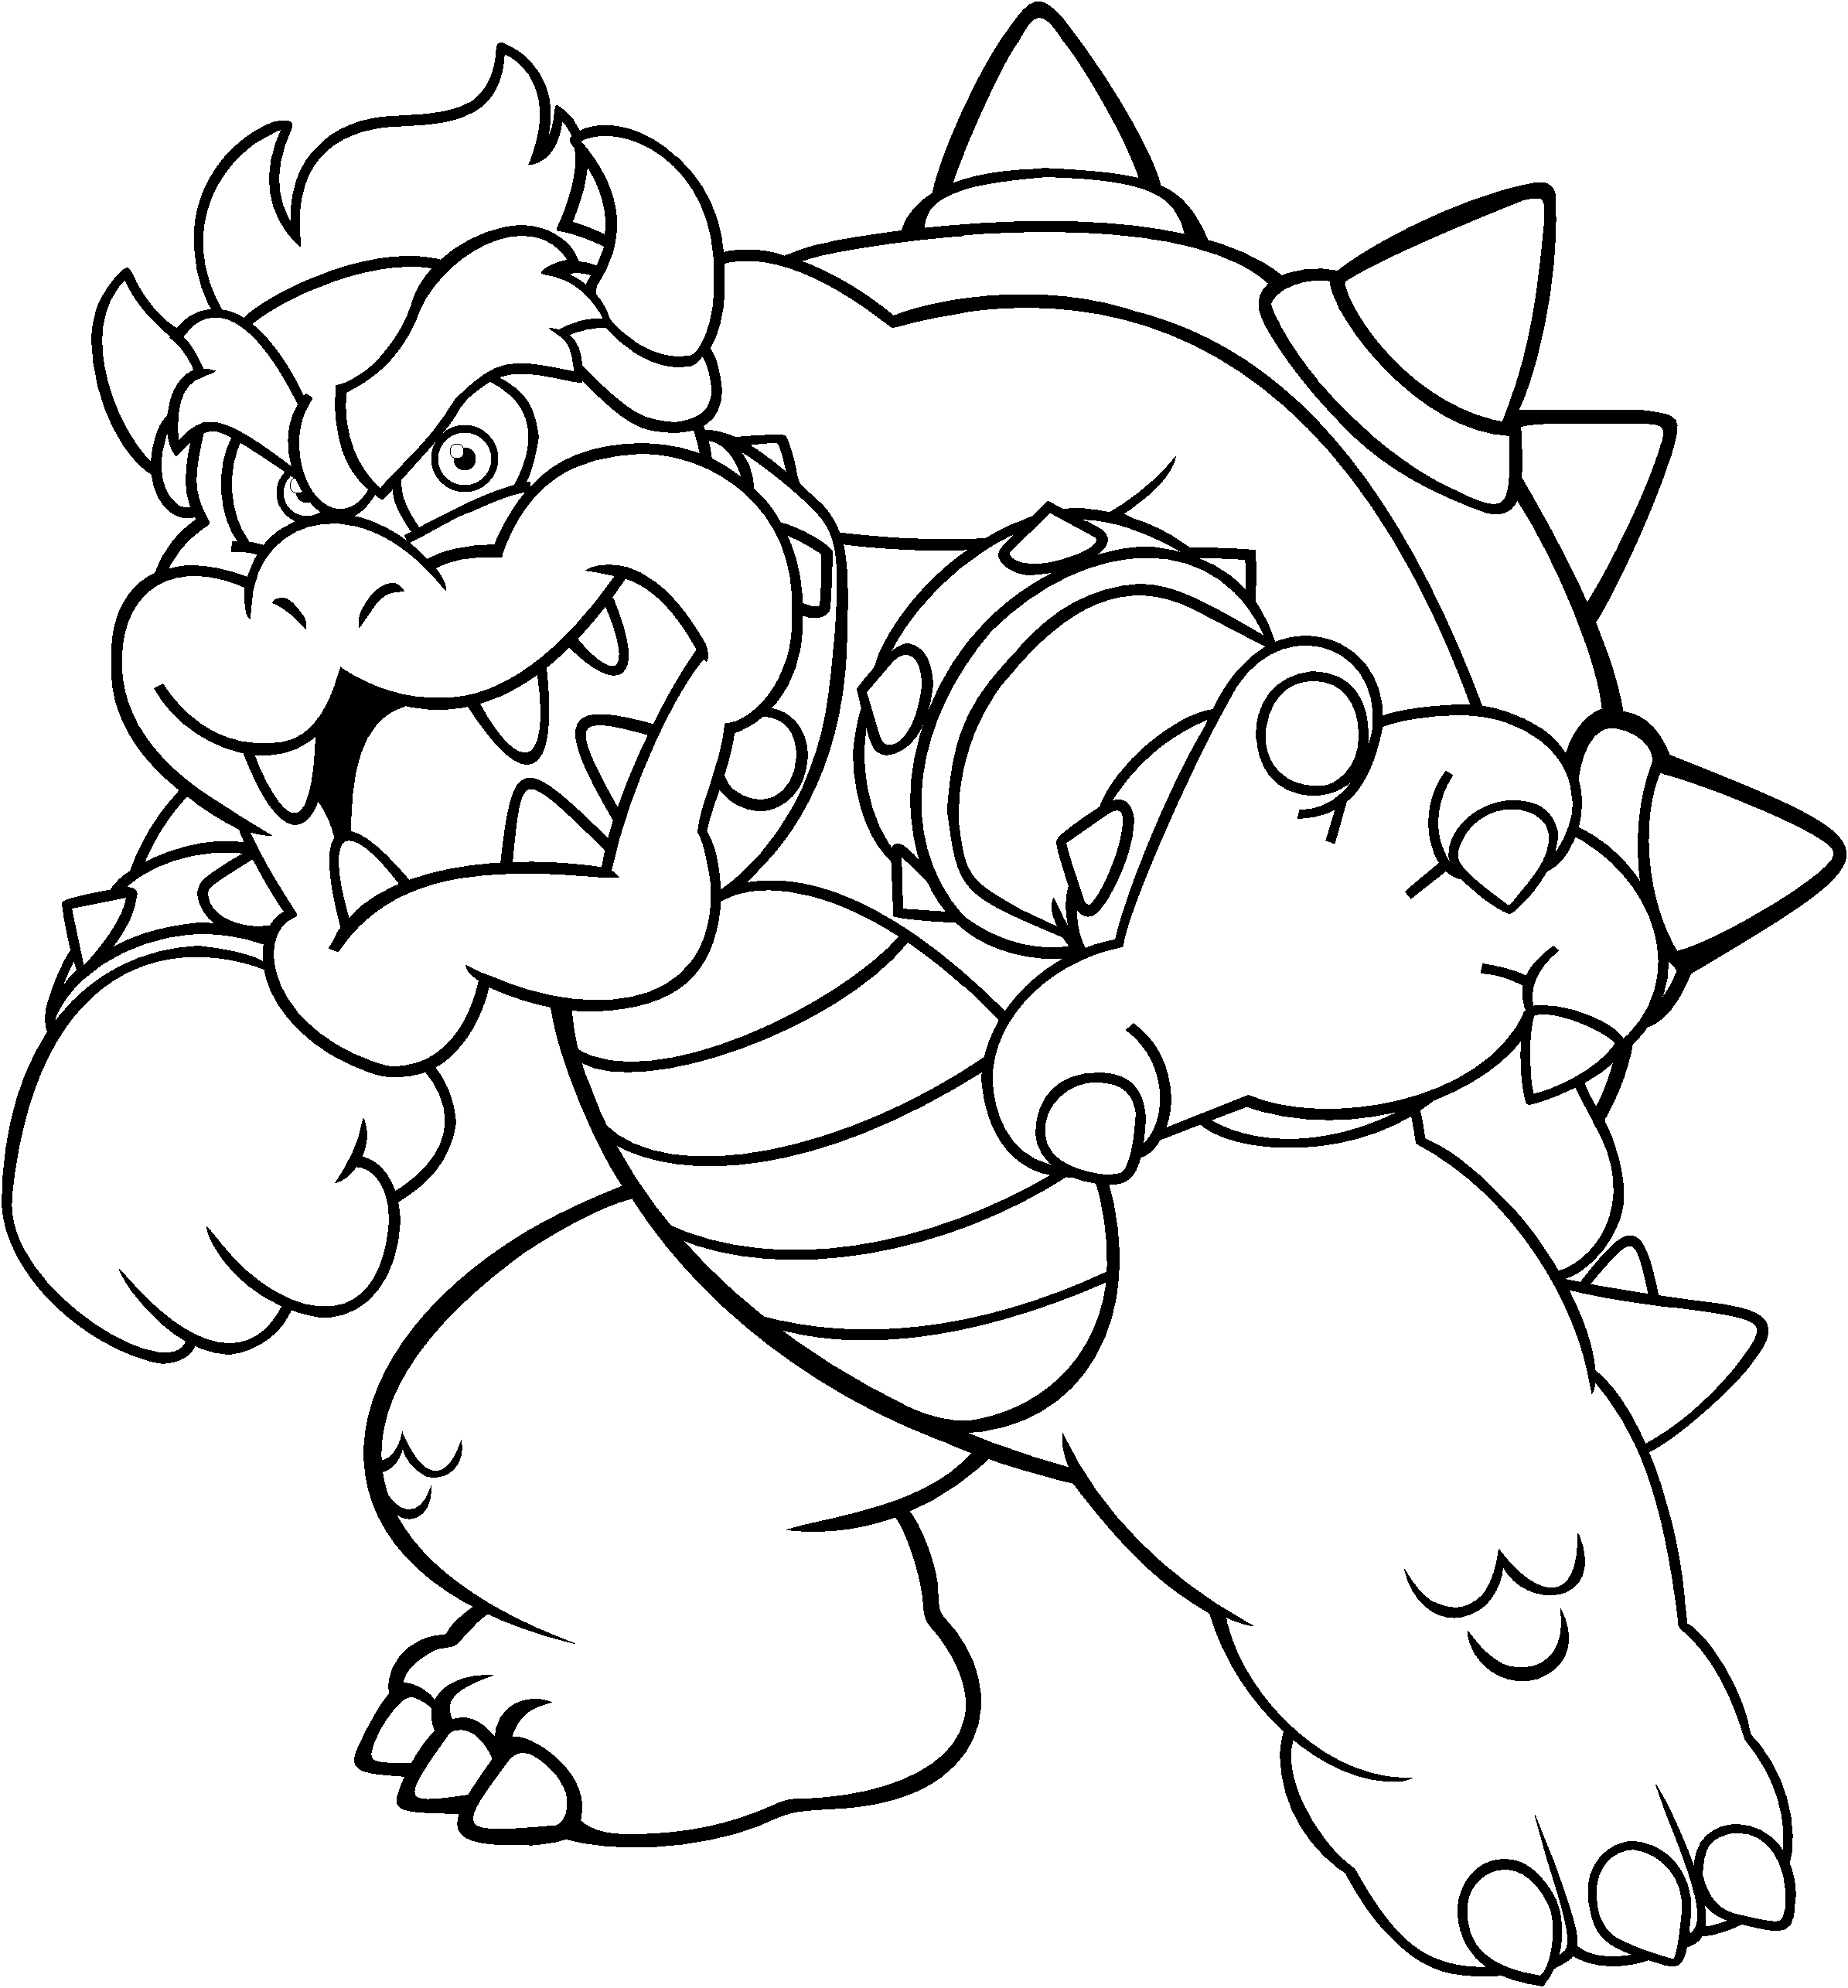 bowser to color bowser coloring pages online coloring home bowser color to